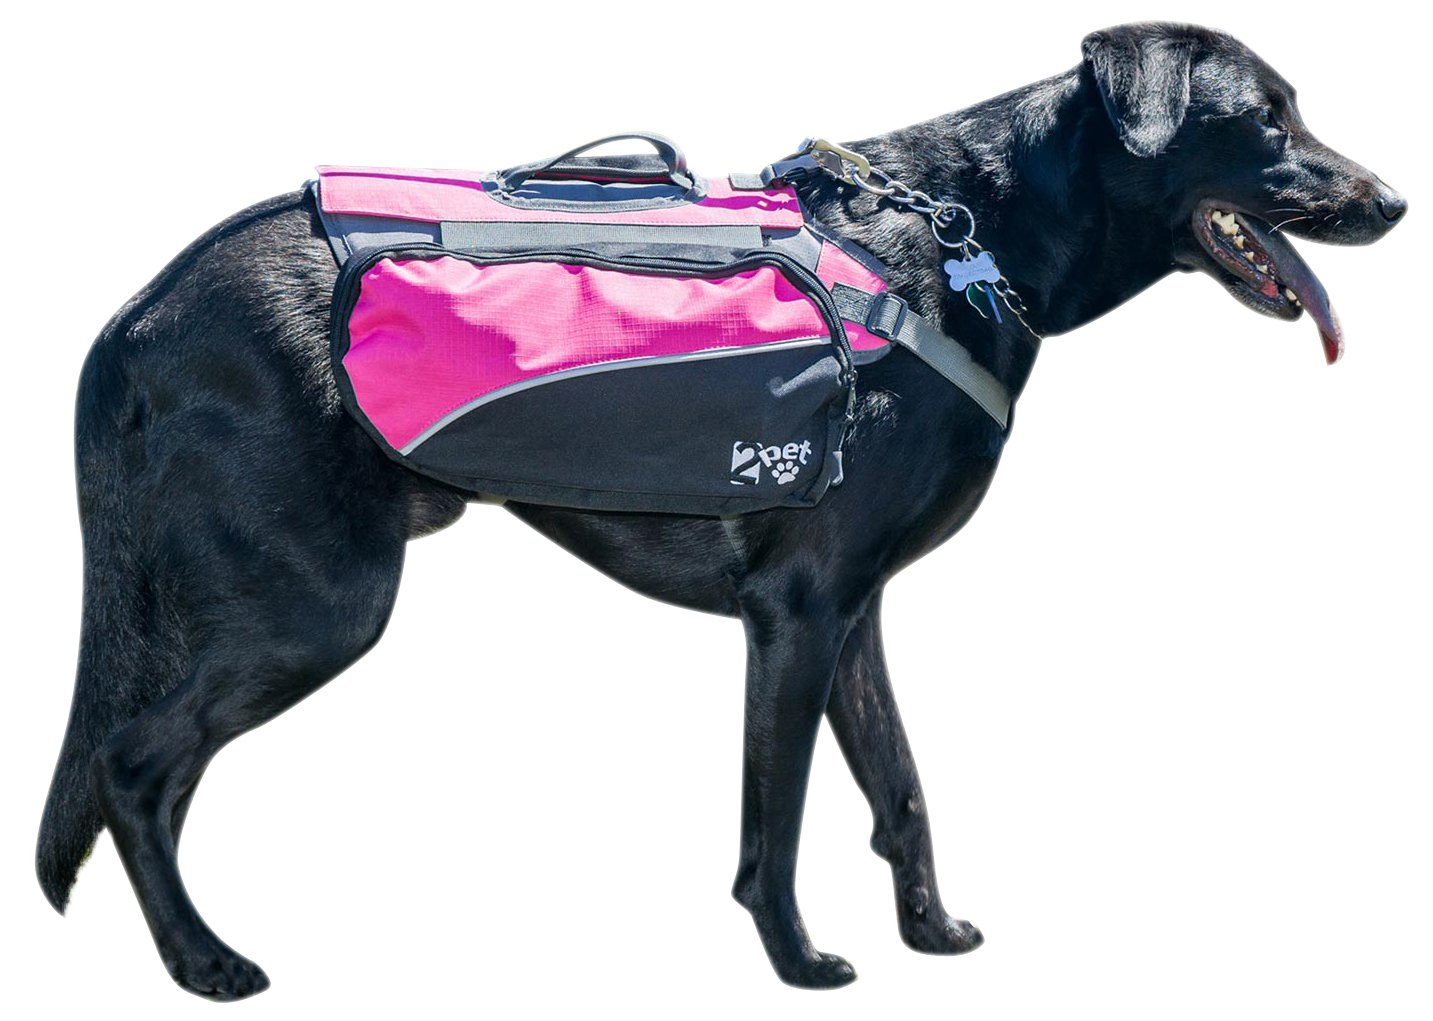 2PET Dog Backpack for Hiking by Compact Dog Saddlebag for Dogs Adjustable Harness, Comfortable Fit-Perfect Dog Carrier Backpack with 2 Zipper Pockets & Bottle Holder for Outdoor Activities Select S/C Detachable Saddle Bags